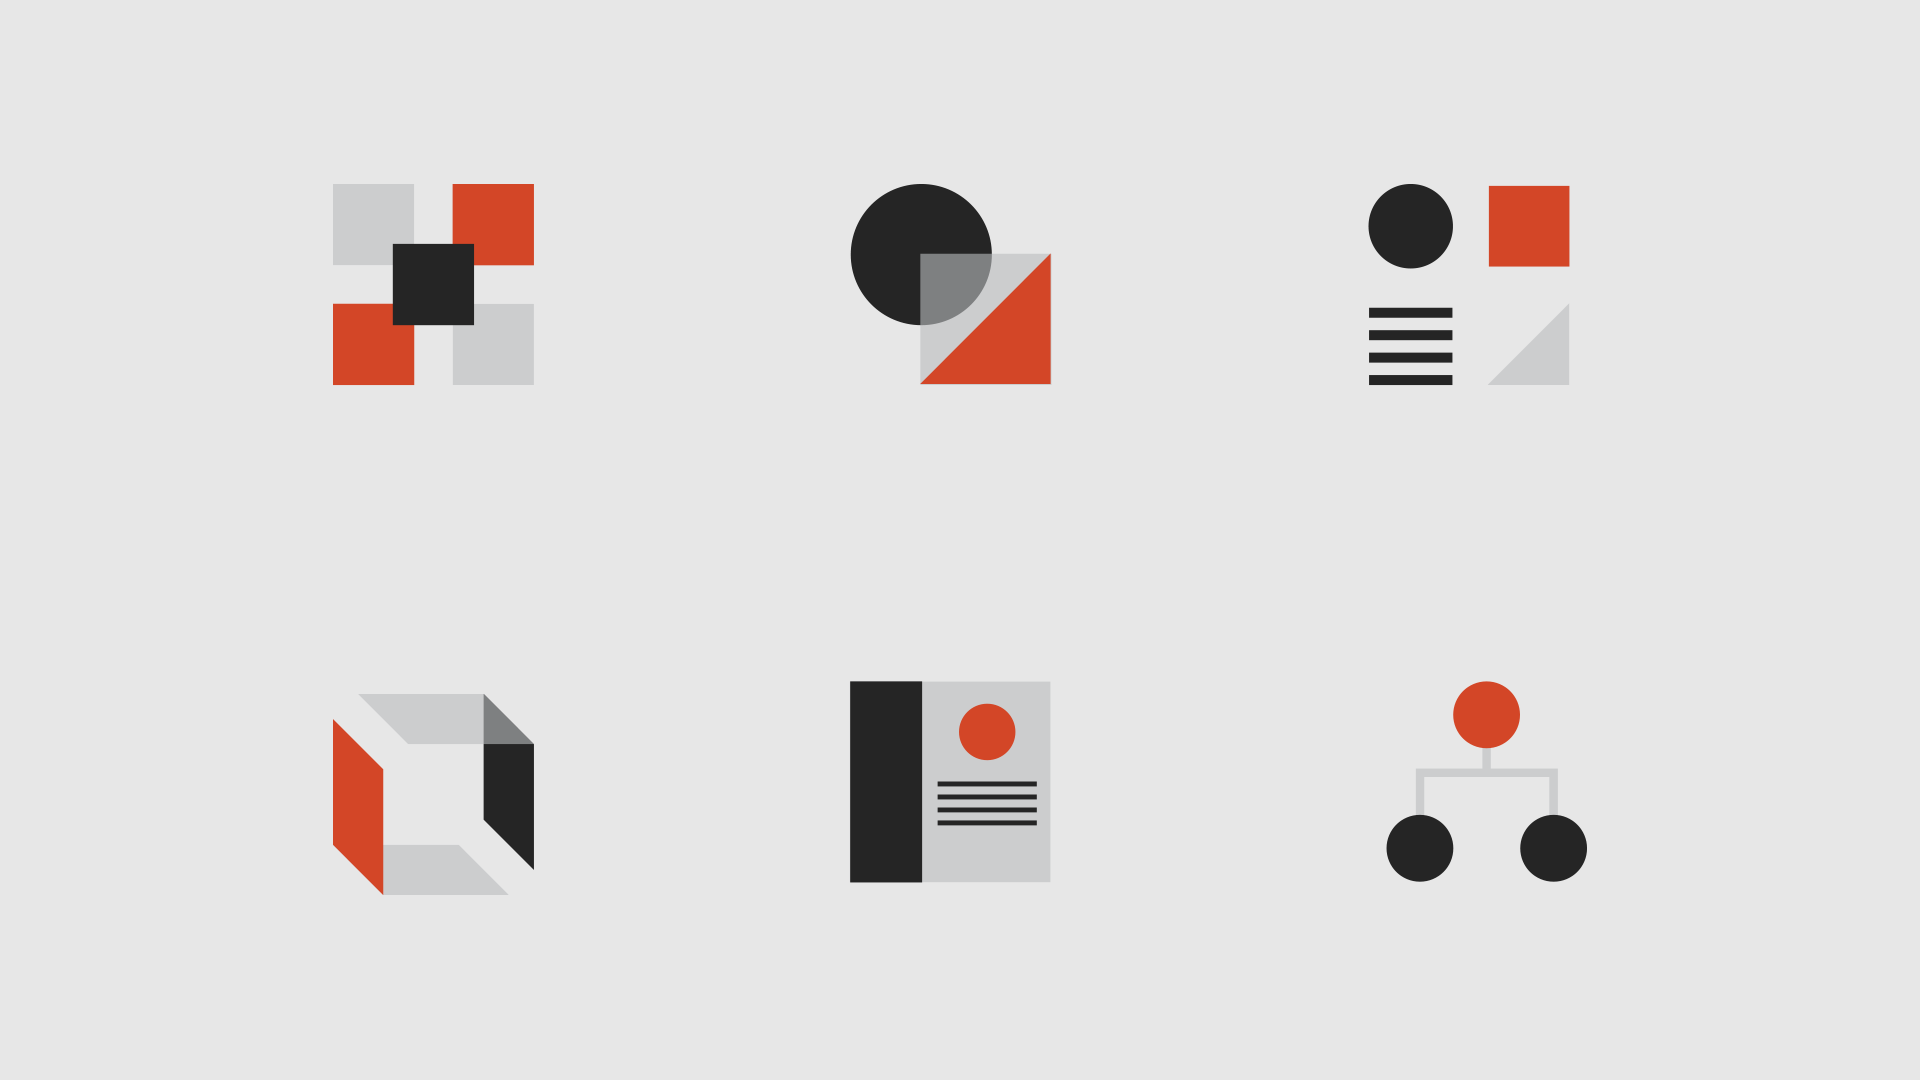 Six icons representing the six pieces of a design system